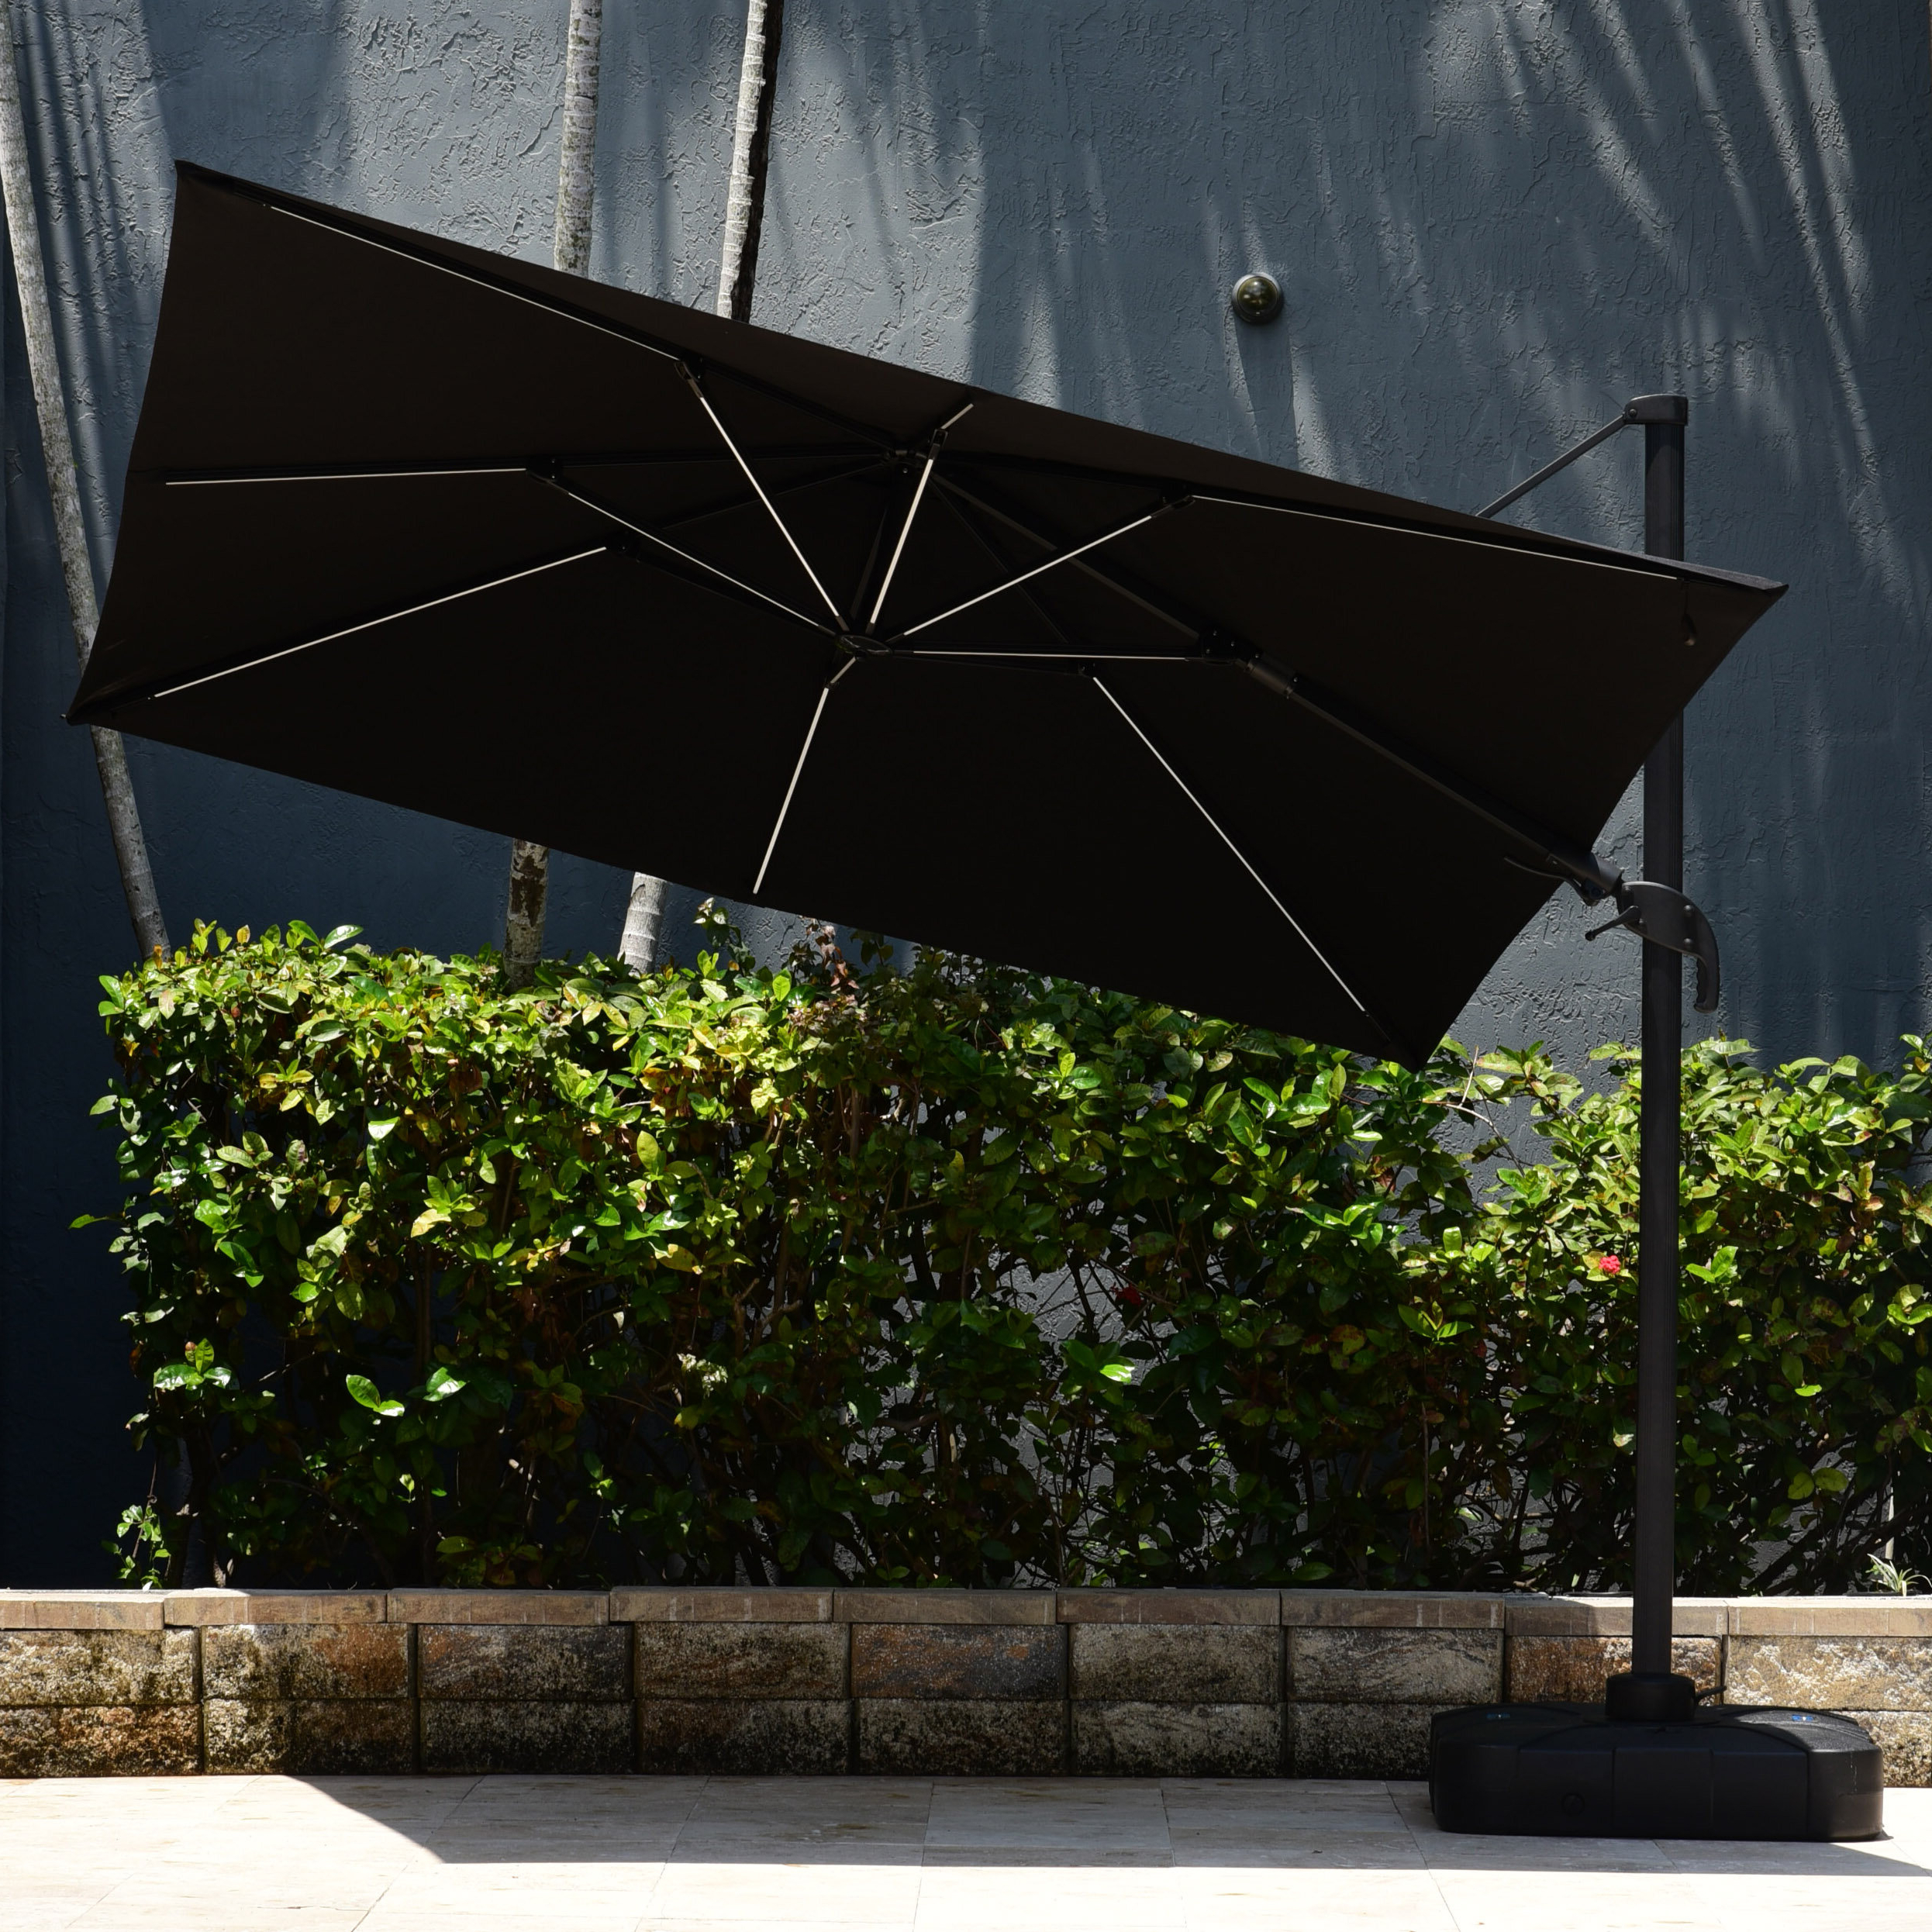 Maglione Fabric 4cantilever Umbrellas Intended For Recent Spitler 10' Square Cantilever Umbrella (View 9 of 20)